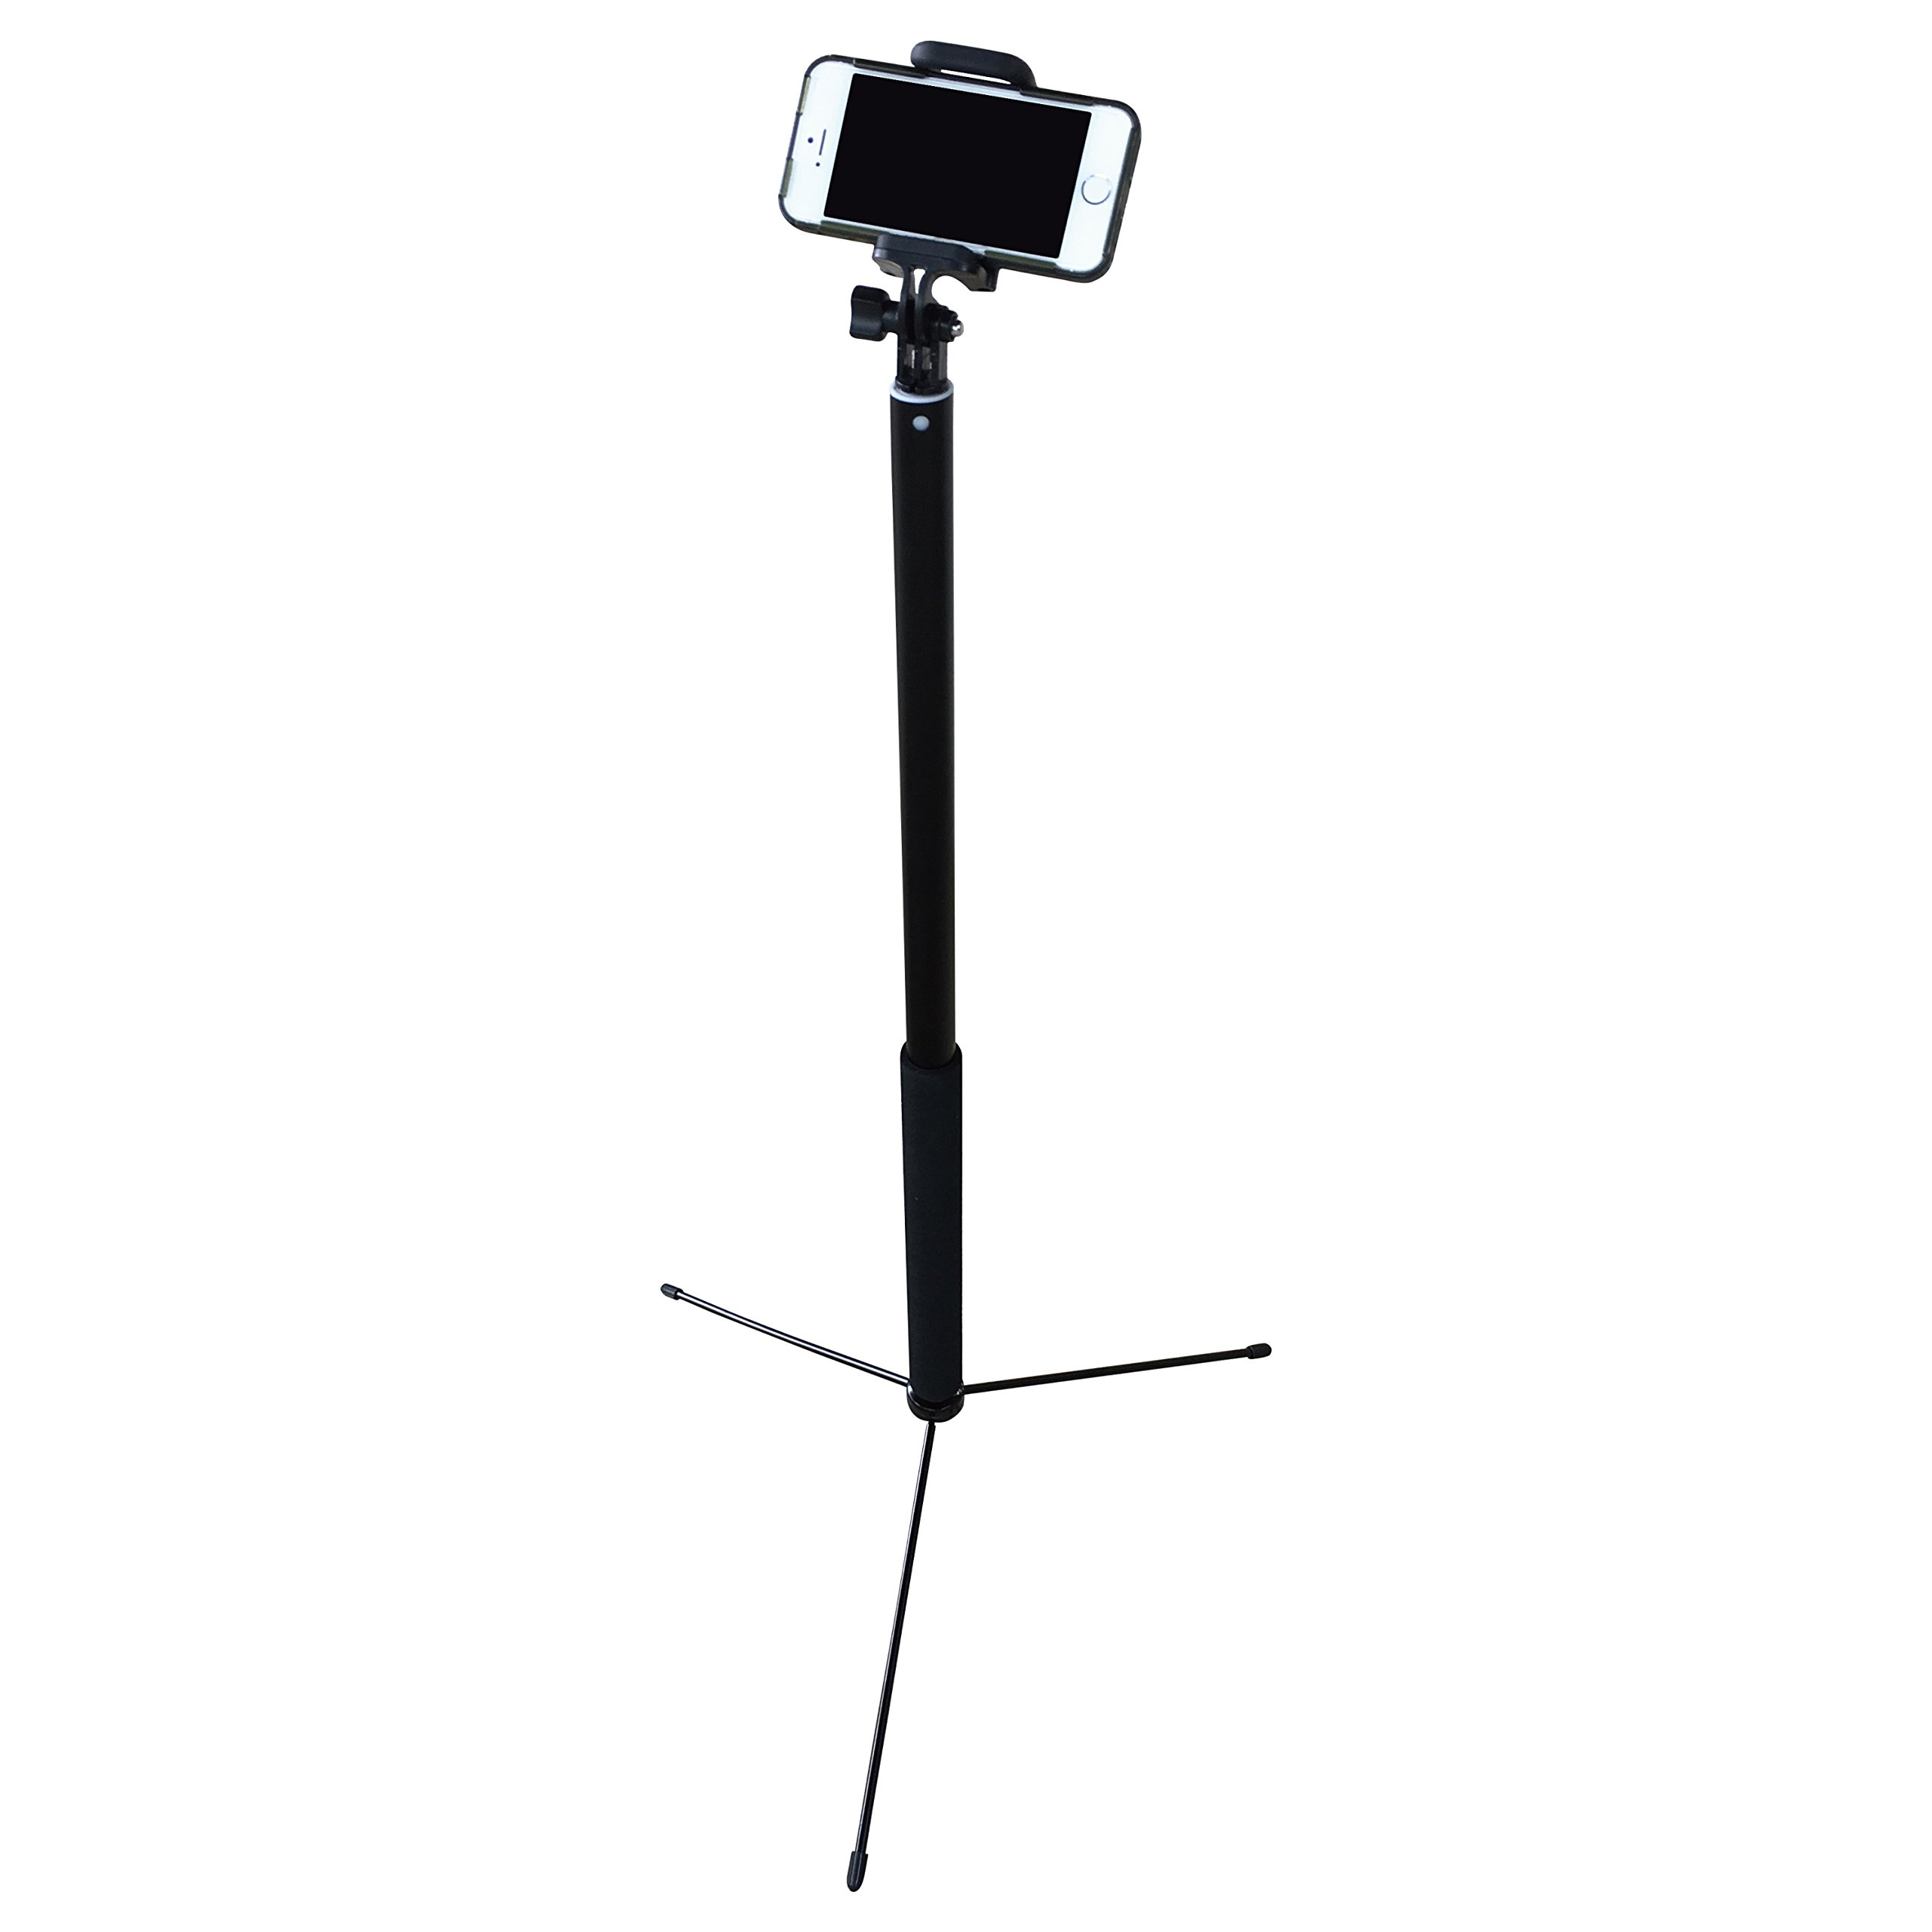 MIGHTY Selfie Stick - w Bluetooth Remote, Steel Tripod Base, Extends 26-120 inches for EPIC VIDEO for Vlogging on iPhone X/8/7/6/Plus, Samsung S7/S8, Android, GoPro & Compact Digital.